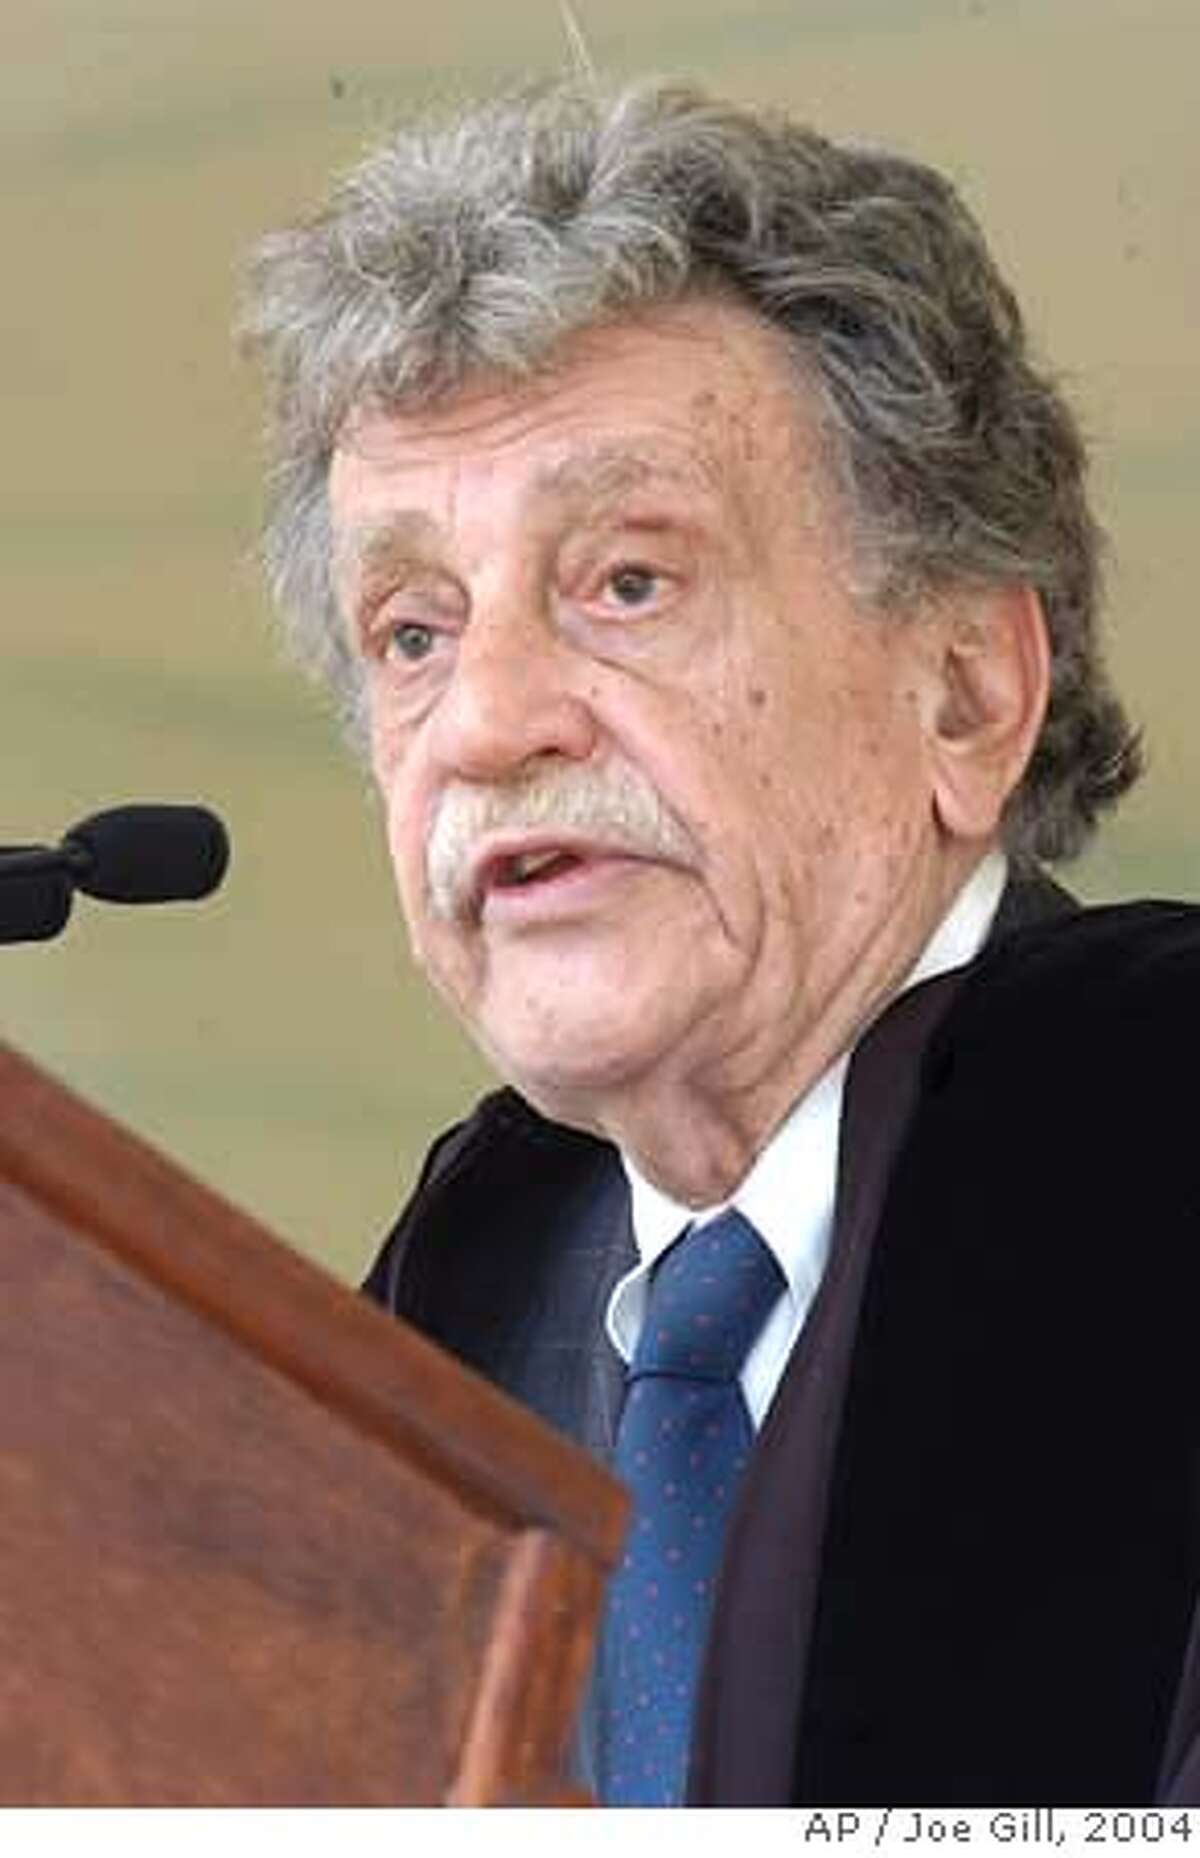 """**FILE**Author Kurt Vonnegut gives the commencement address at Lehigh University's 136th Commencement in Bethlehem, Pa.,in a May 24, 2004, file photo. Kurt Vonnegut, the satirical novelist who captured the absurdity of war and questioned the advances of science in darkly humorous works such as """"Slaughterhouse-Five"""" and """"Cat's Cradle,"""" died Wednesday, April 11, 2007, at age 84, his wife said.(AP Photo/The Express-Times, Joe Gill-File)"""